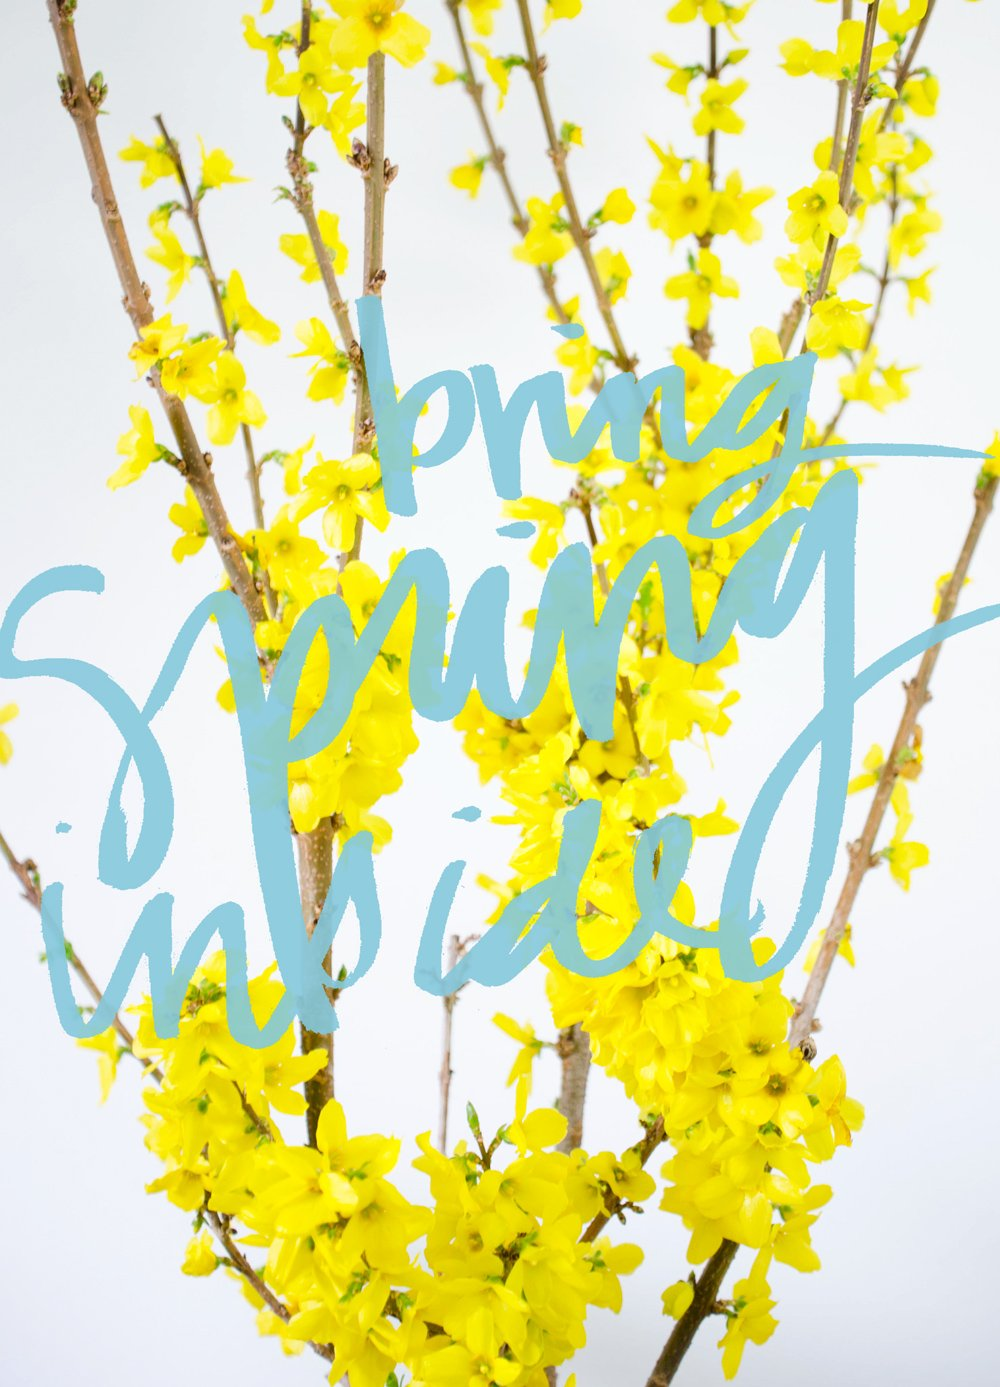 EARLY BLOOMING: BRING SPRING INSIDE https://thouswell.com/early-blooming-bring-spring-inside/